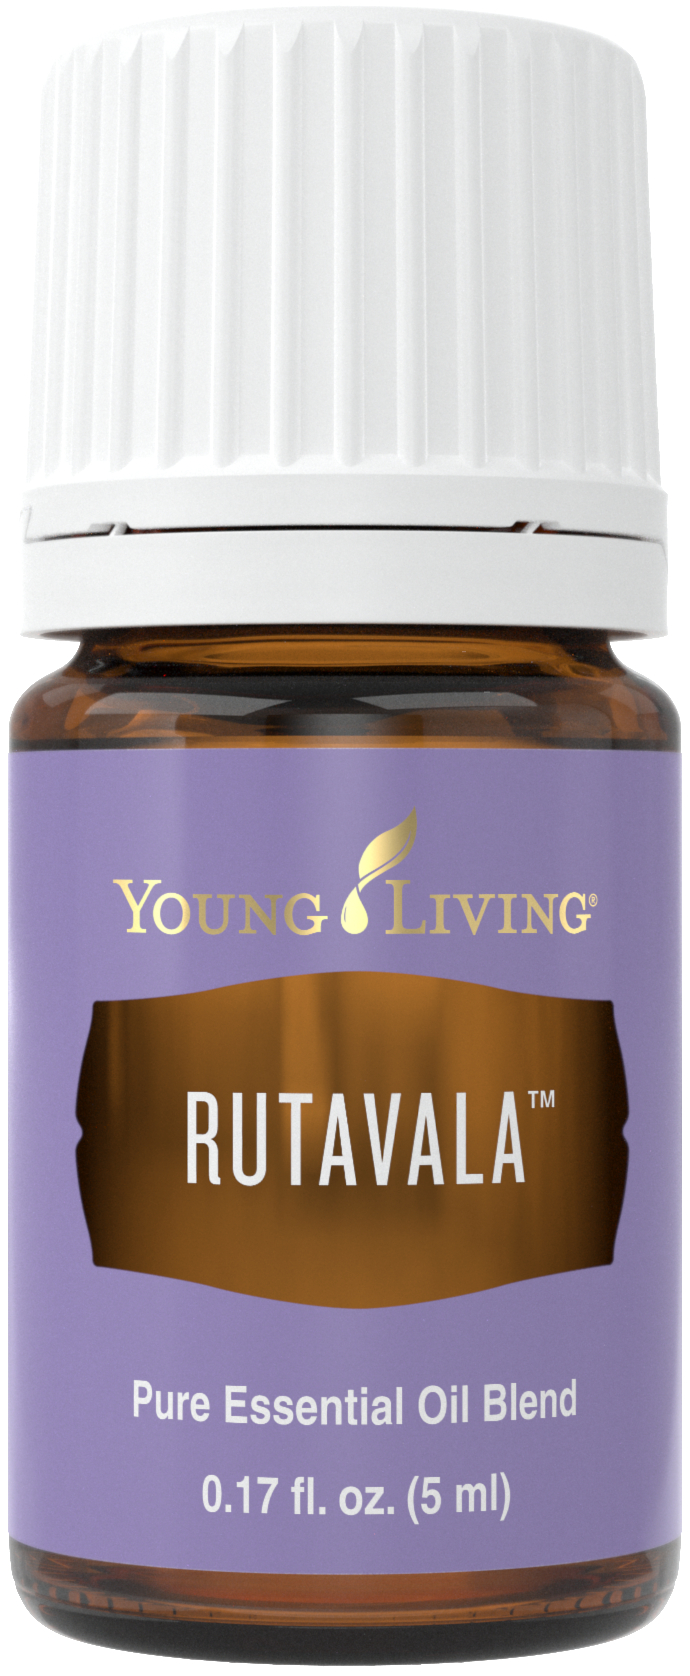 RutaVaLa Essential Oil Blend--Young Living Essential Oils